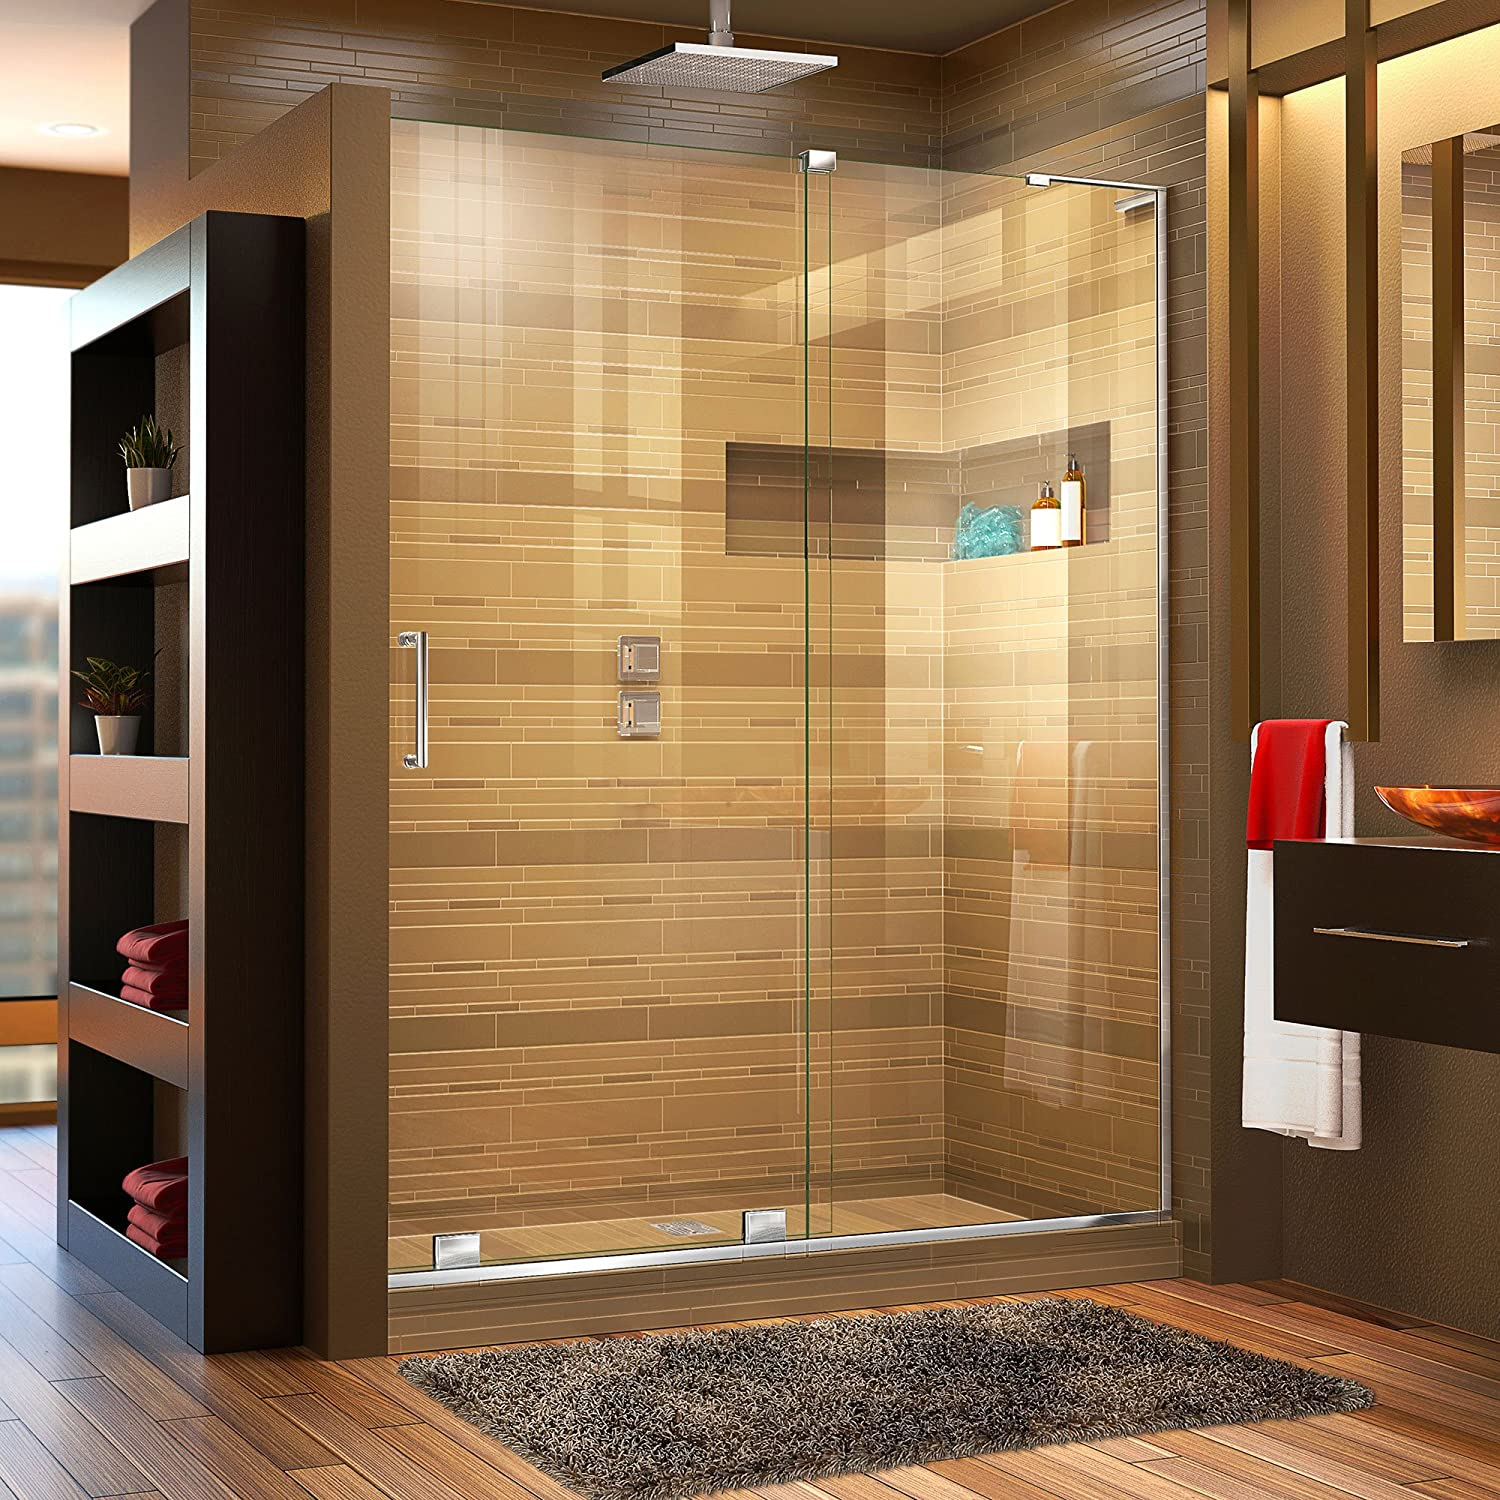 DreamLine Mirage-X 56-60 in. Width, Frameless Sliding Shower Door, 3 8 Glass, Chrome Finish